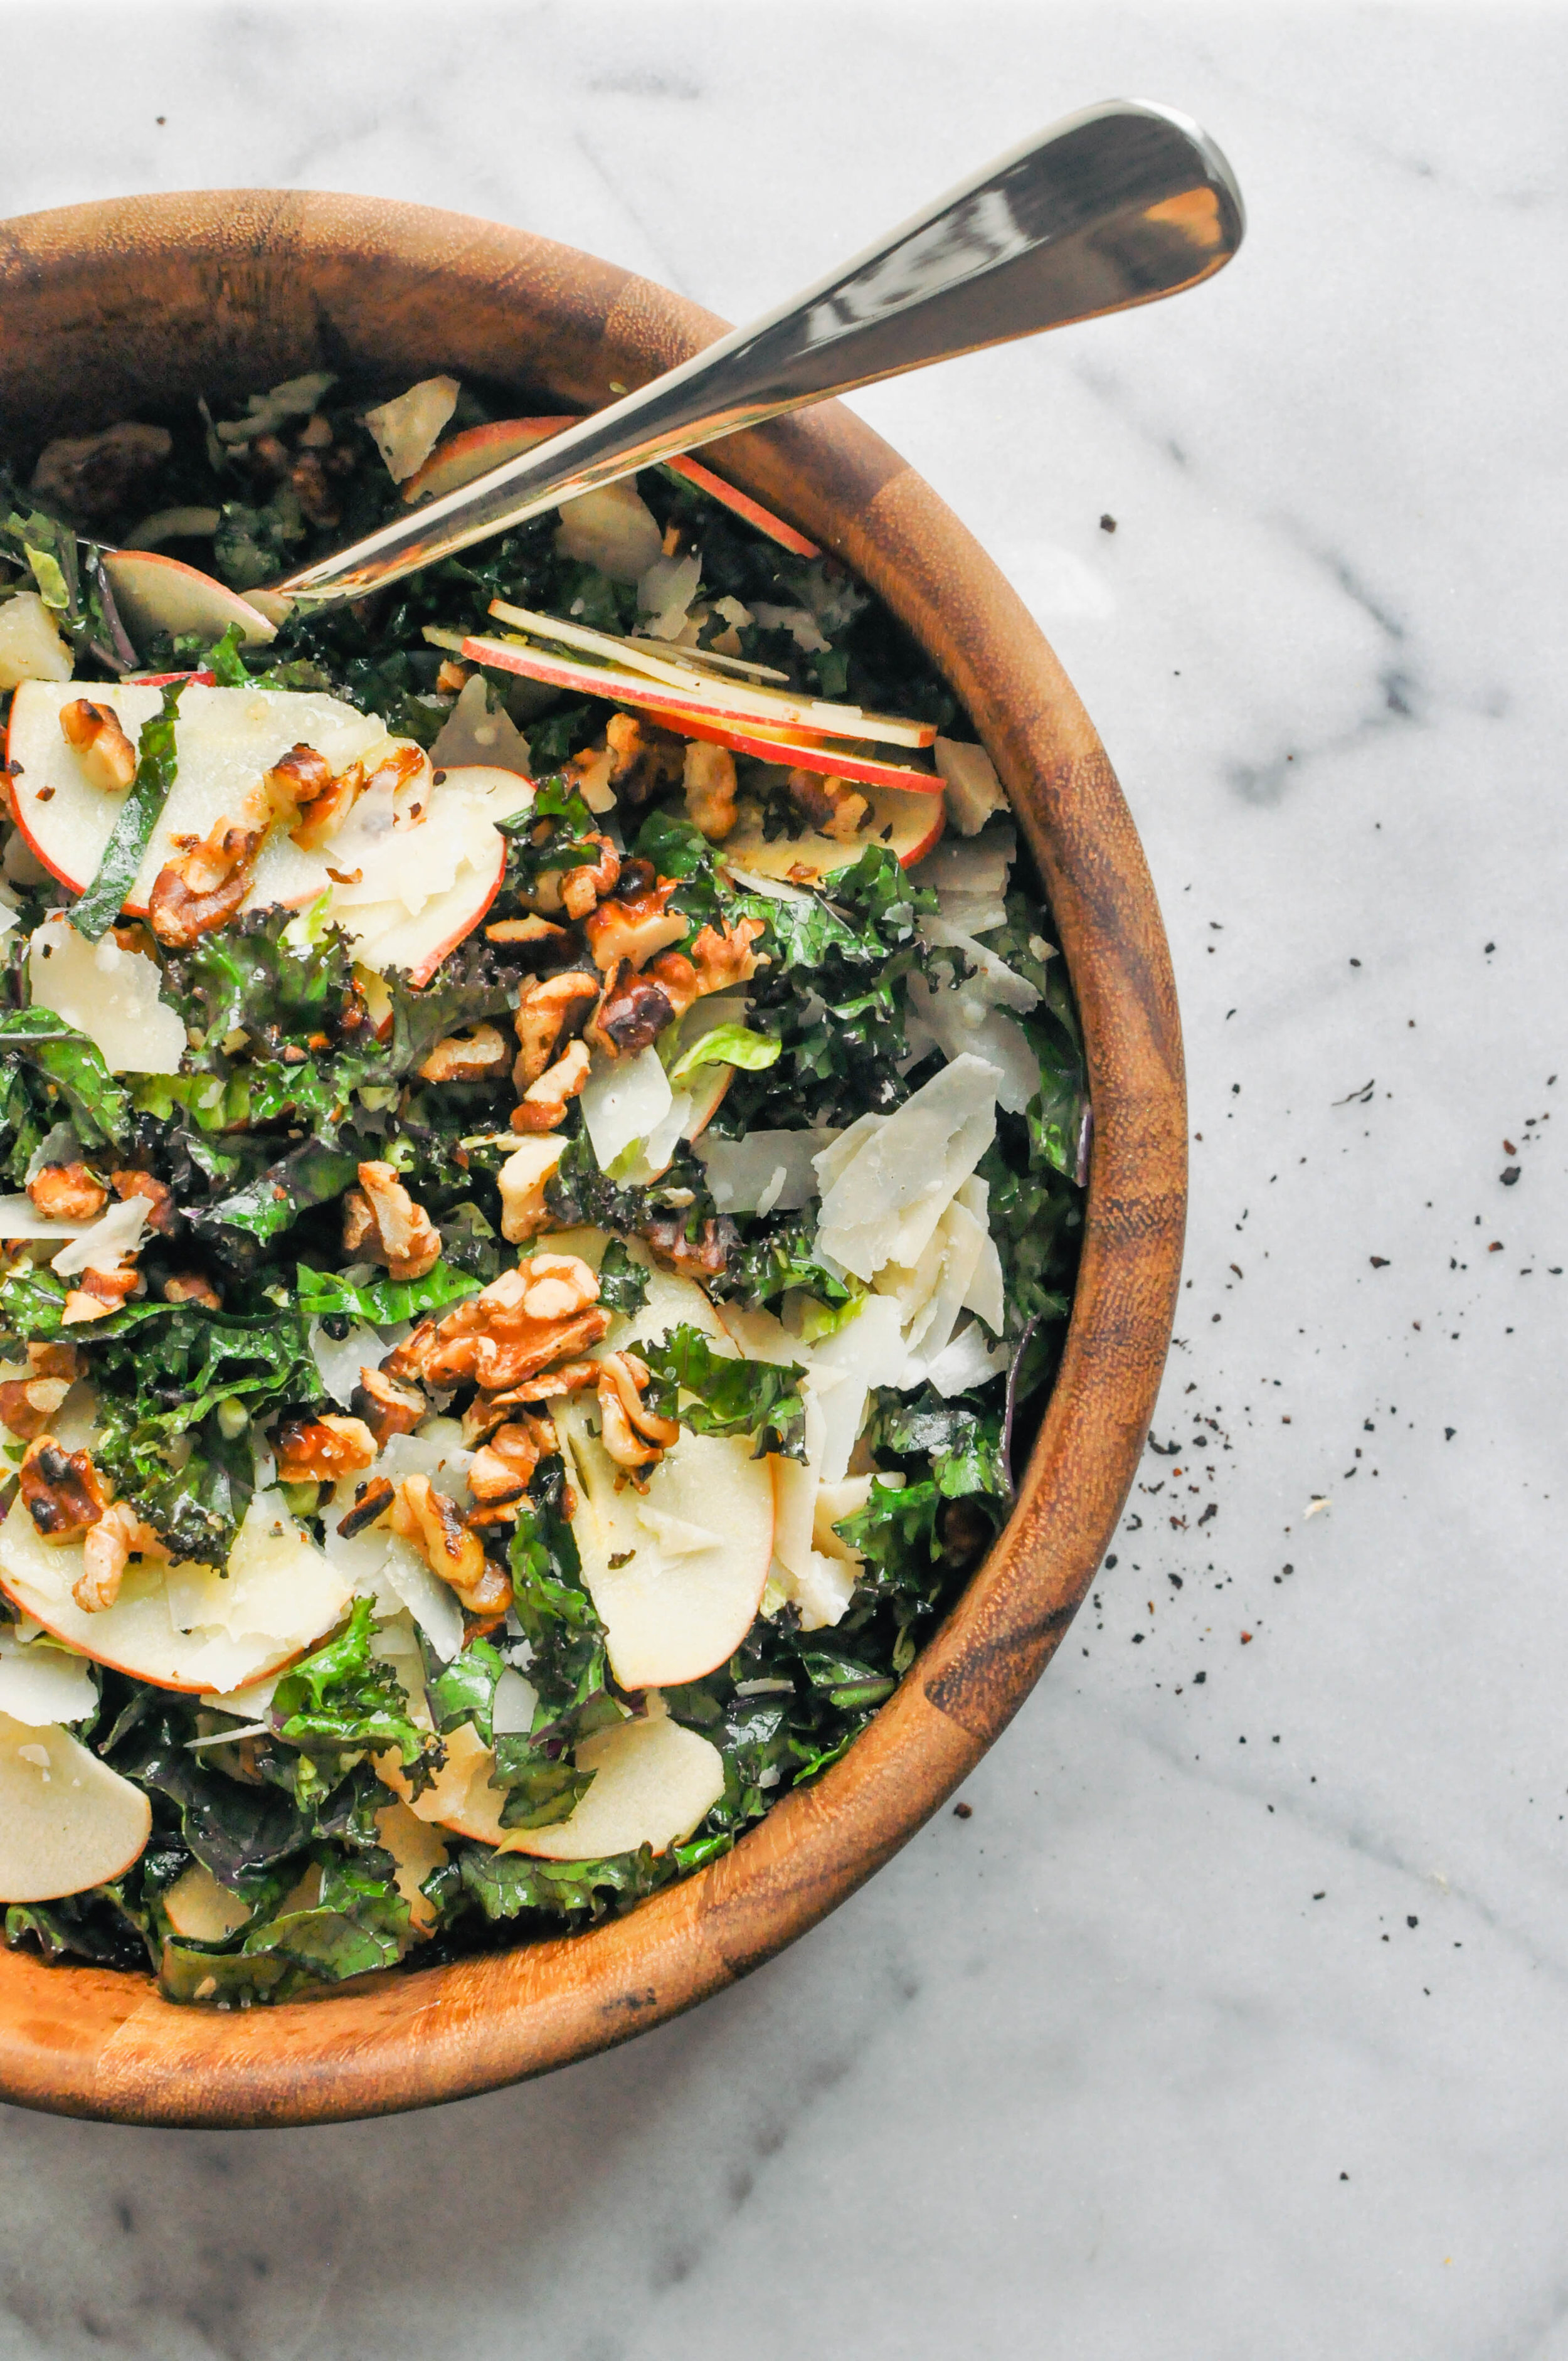 Shredded Brussels Sprouts, Kale, and Apple Salad Recipe. A delicious, vegetarian side salad | This Healthy Table